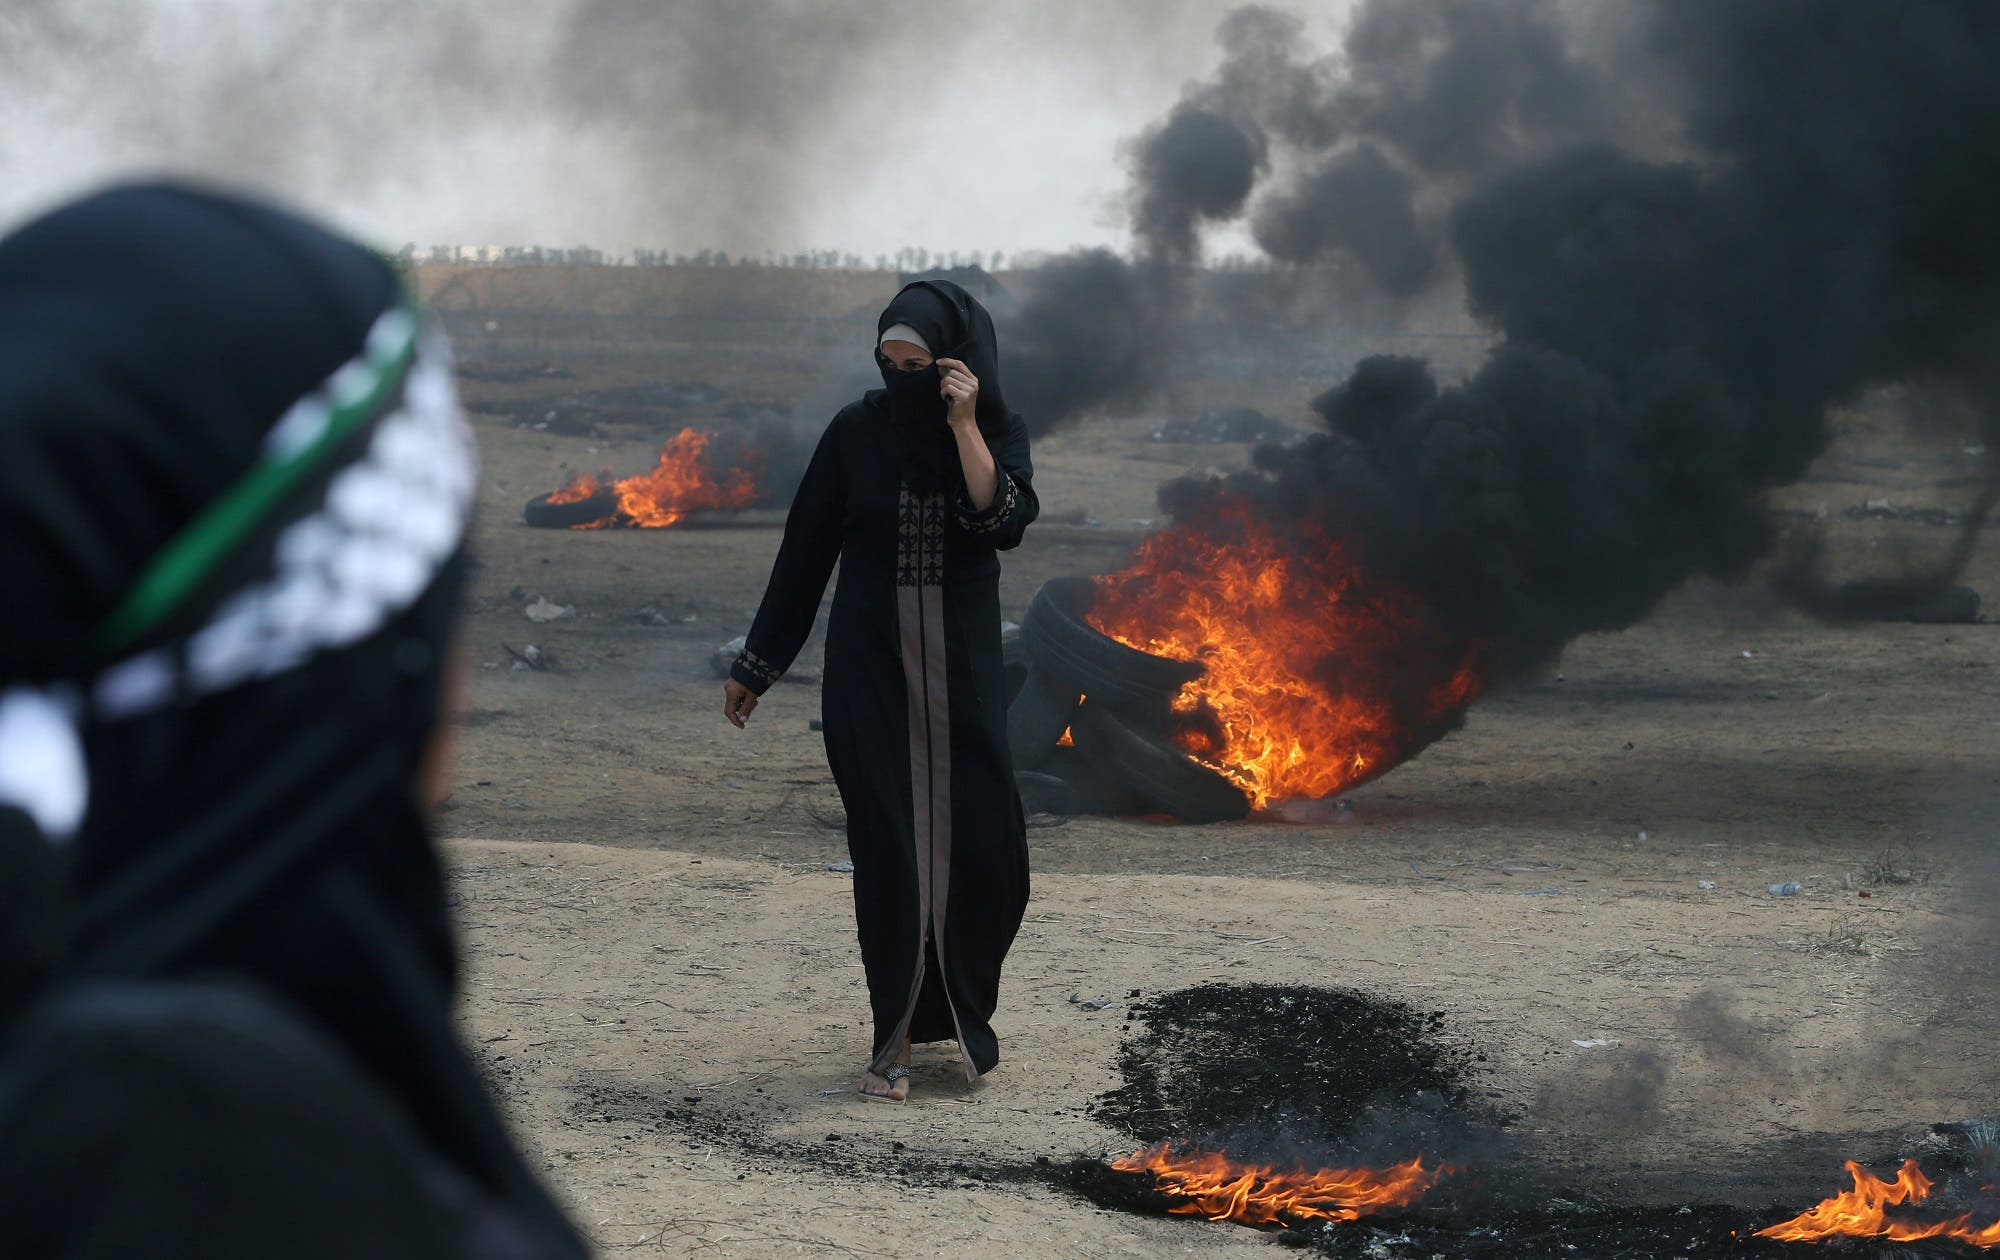 Female Palestinian demonstrator walks during a protest against US embassy move to Jerusalem. (Reuters)